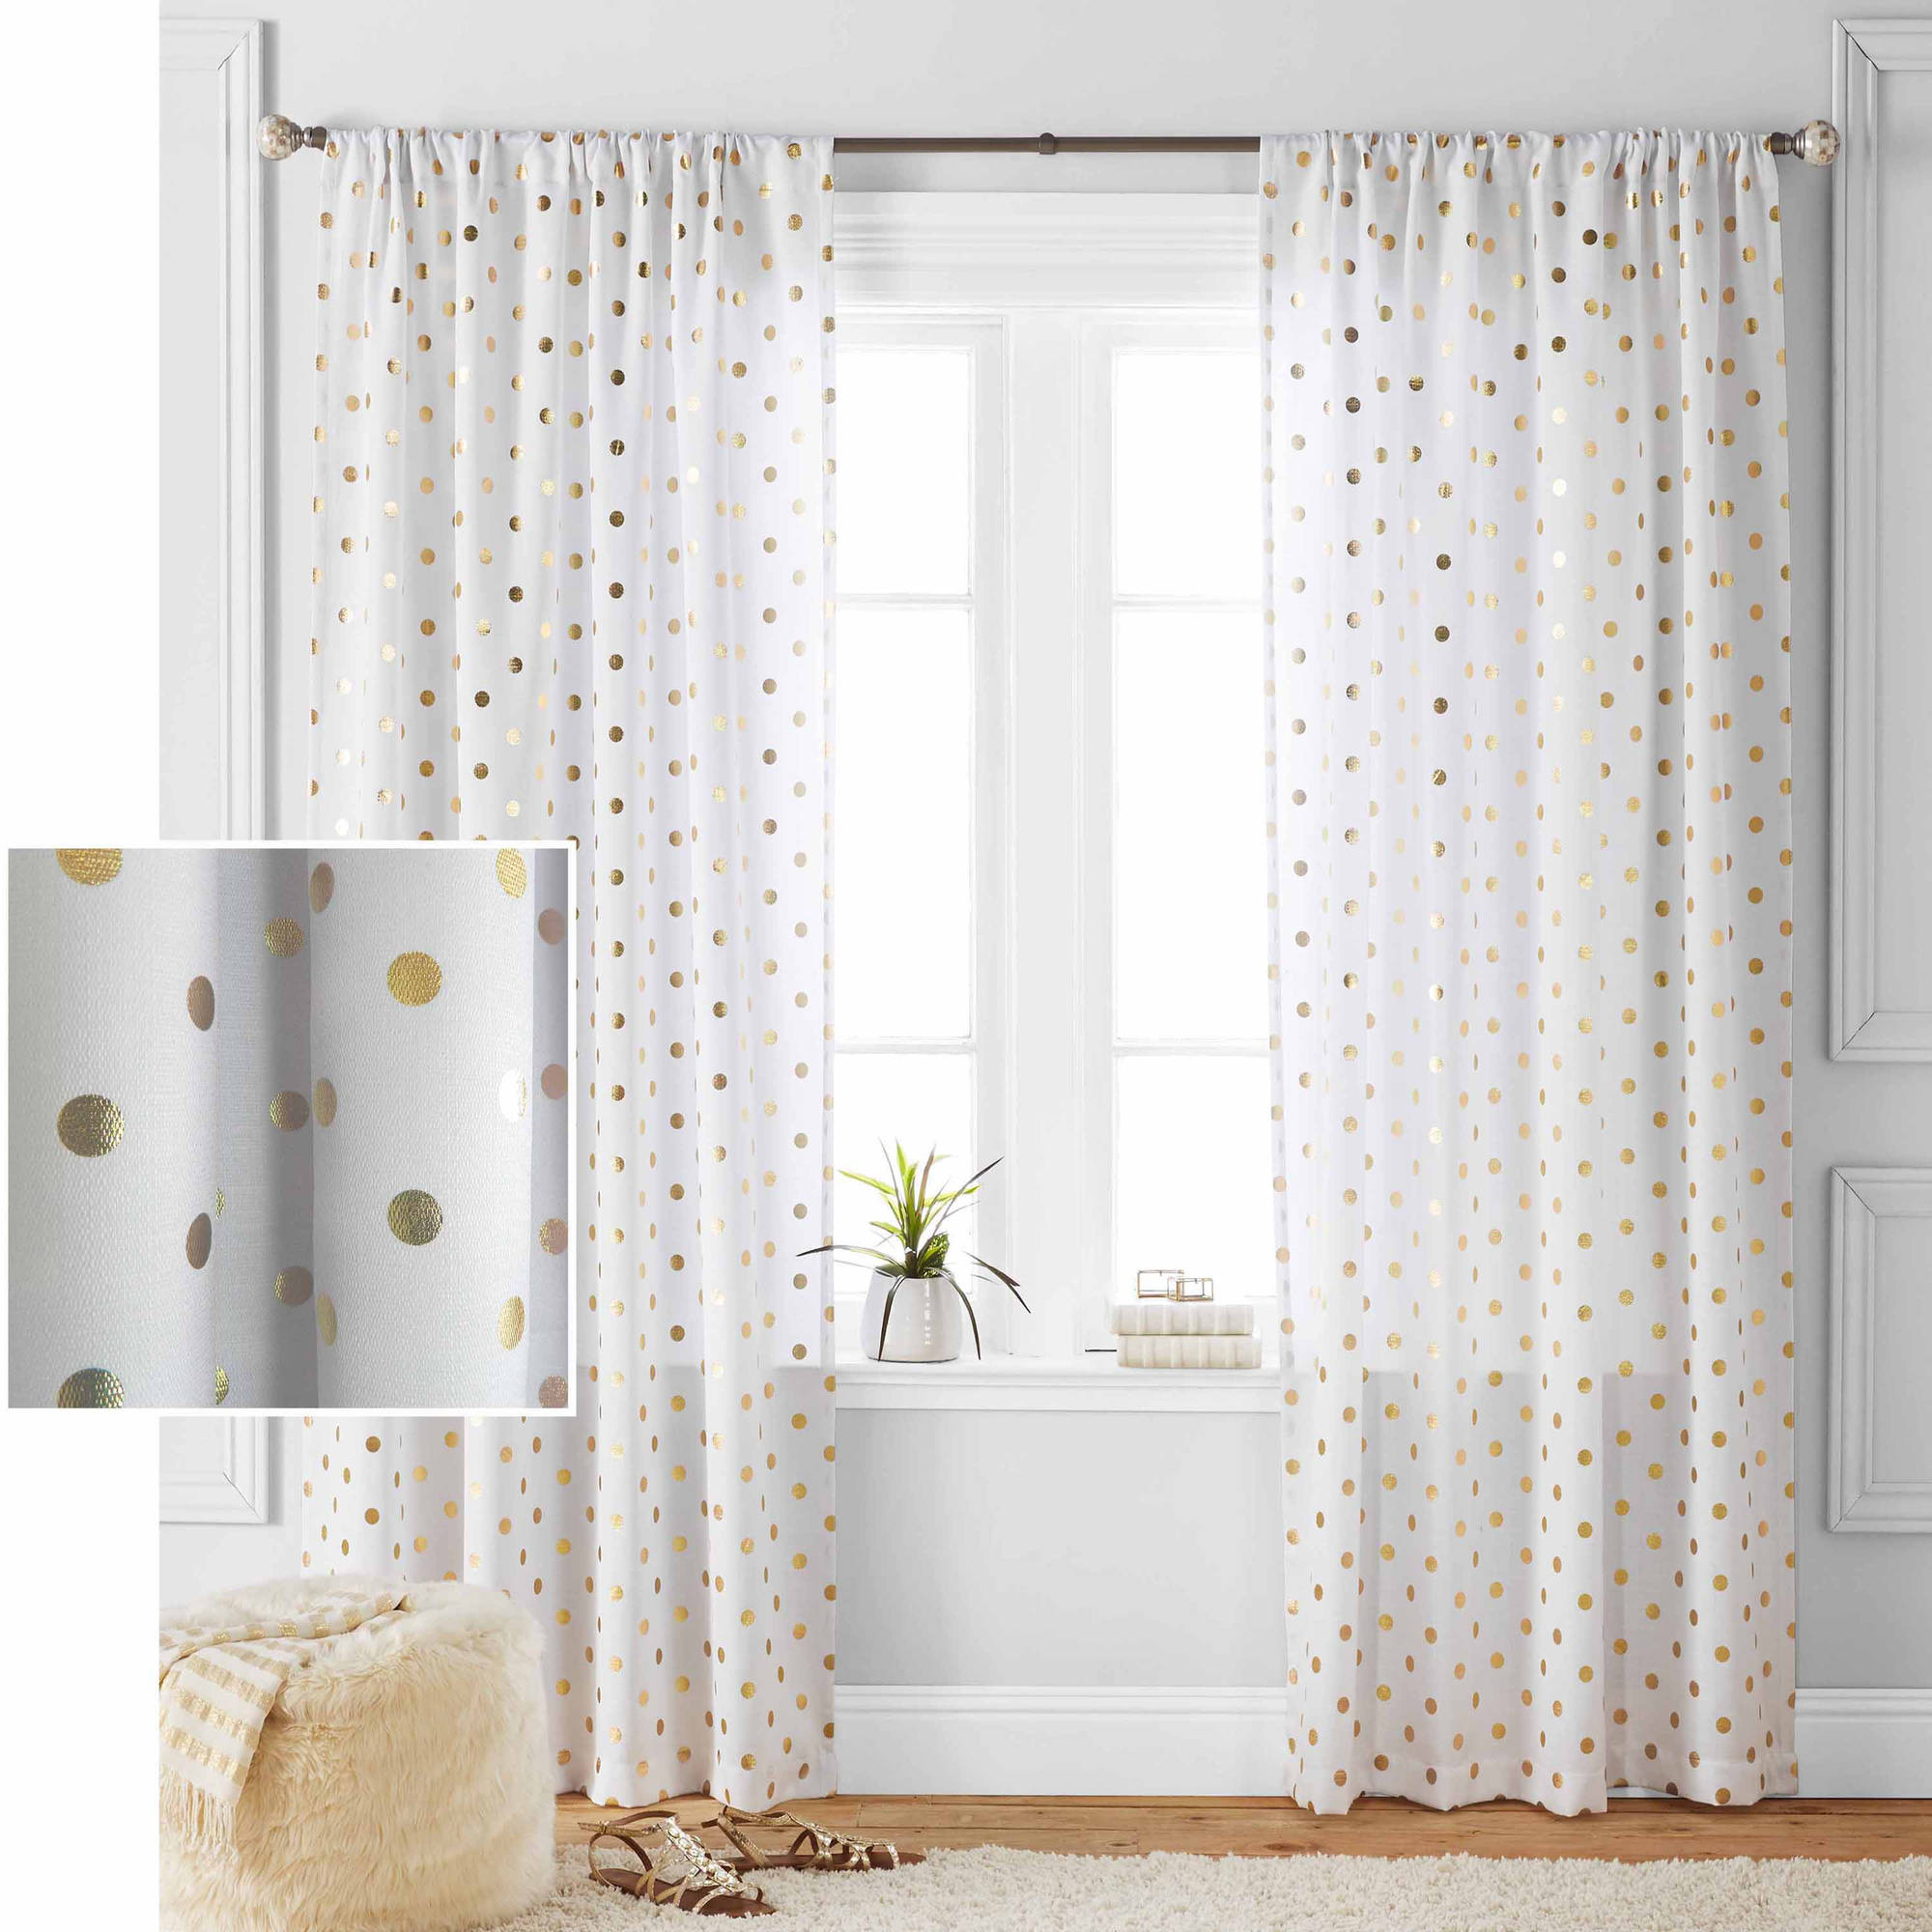 Famous Blended Fabric The Road Rises Wall Panel With Topper Tapestries And Wall Hangings Inside Better Homes And Gardens Metallic Polka Dots Single Window Panel (View 8 of 20)